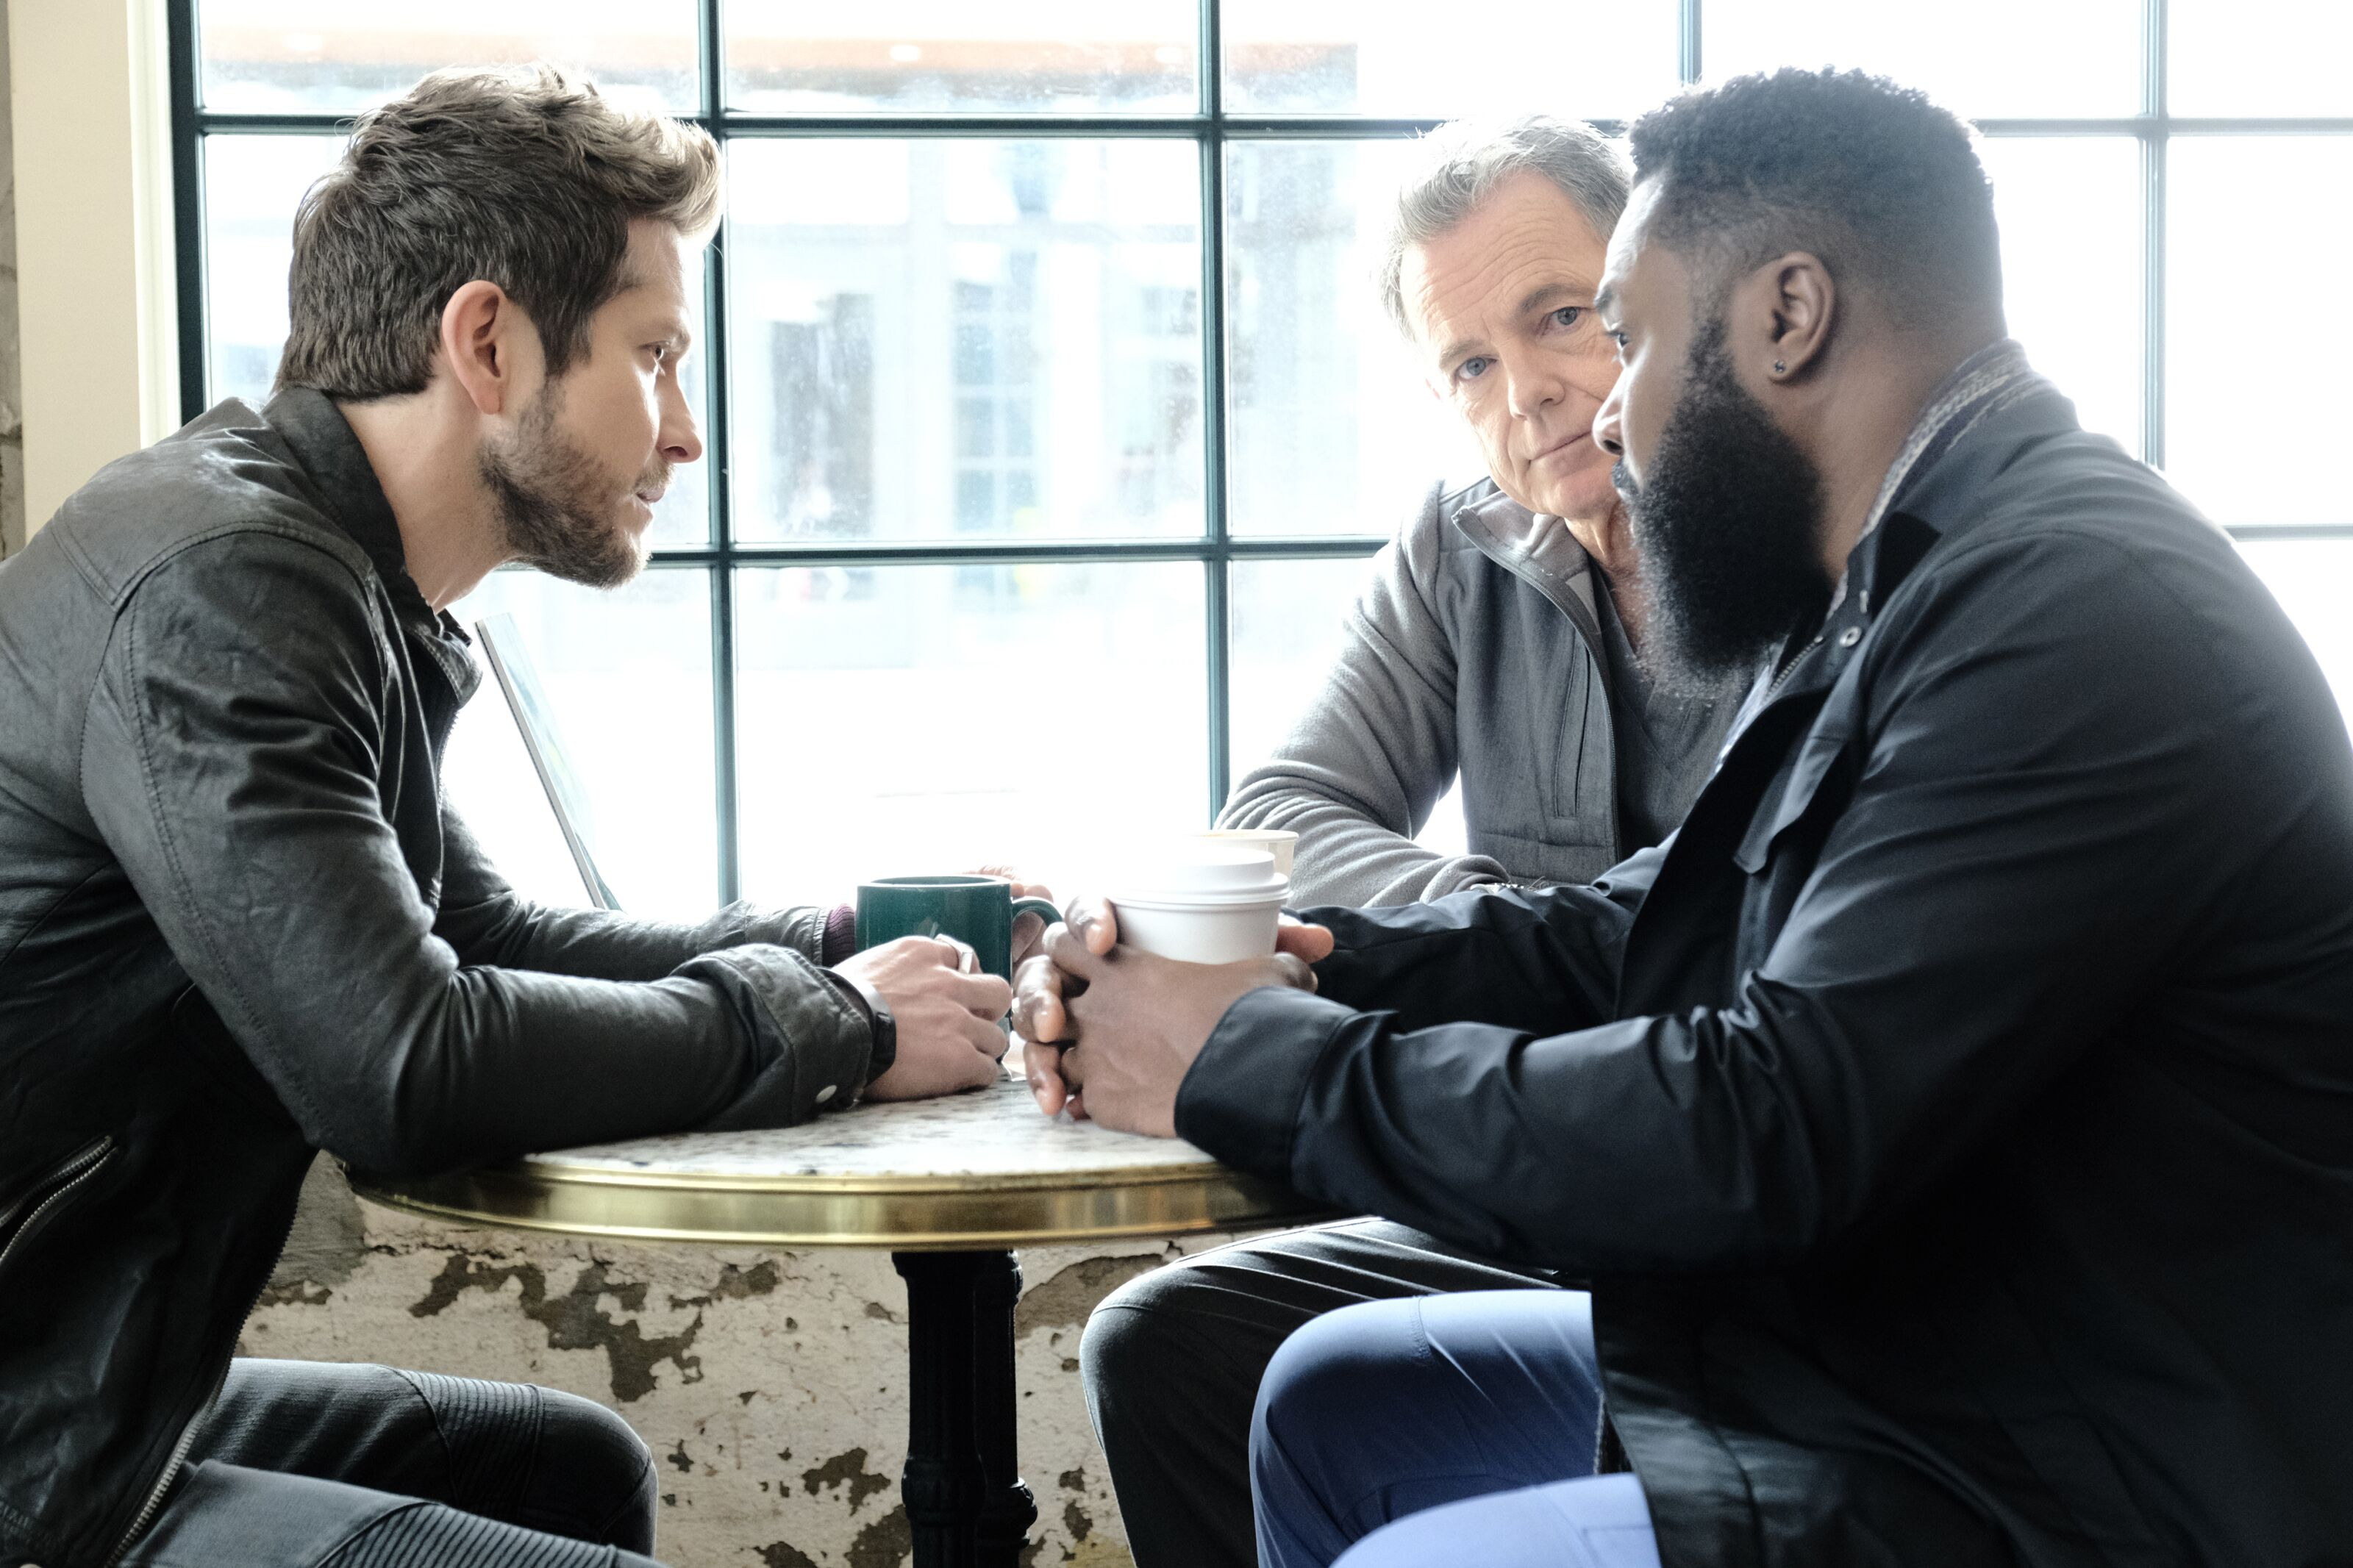 Tuesday TV ratings: The Resident up, Emergence falls again